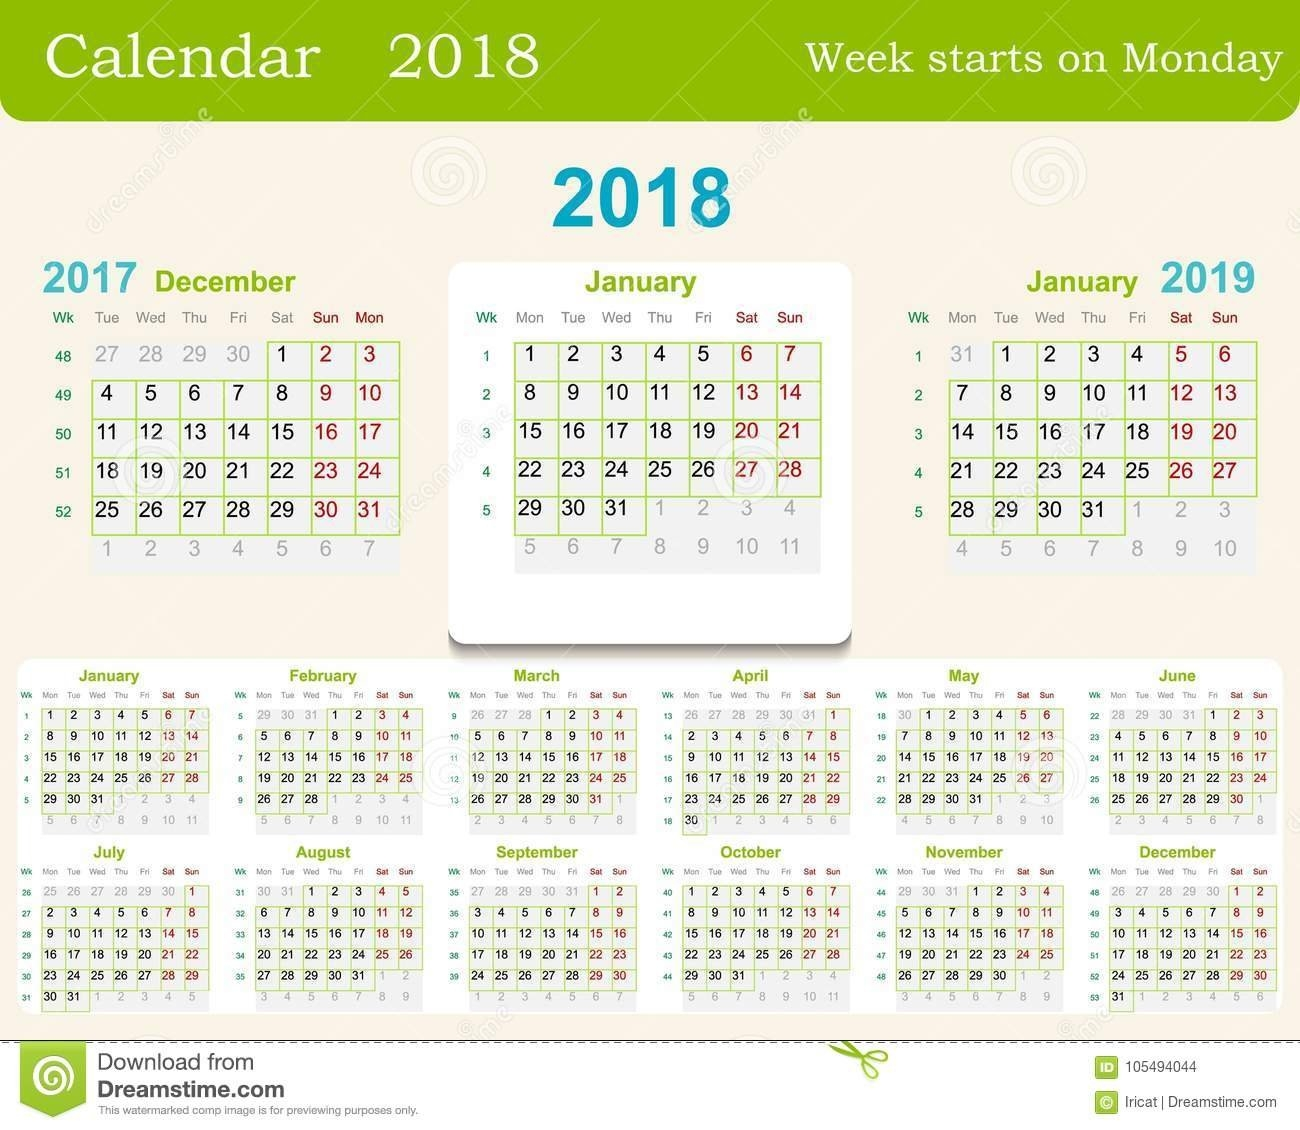 Calendar Grid For 2018 Week Starts From Monday And From December Of Calendar Week 49 2019